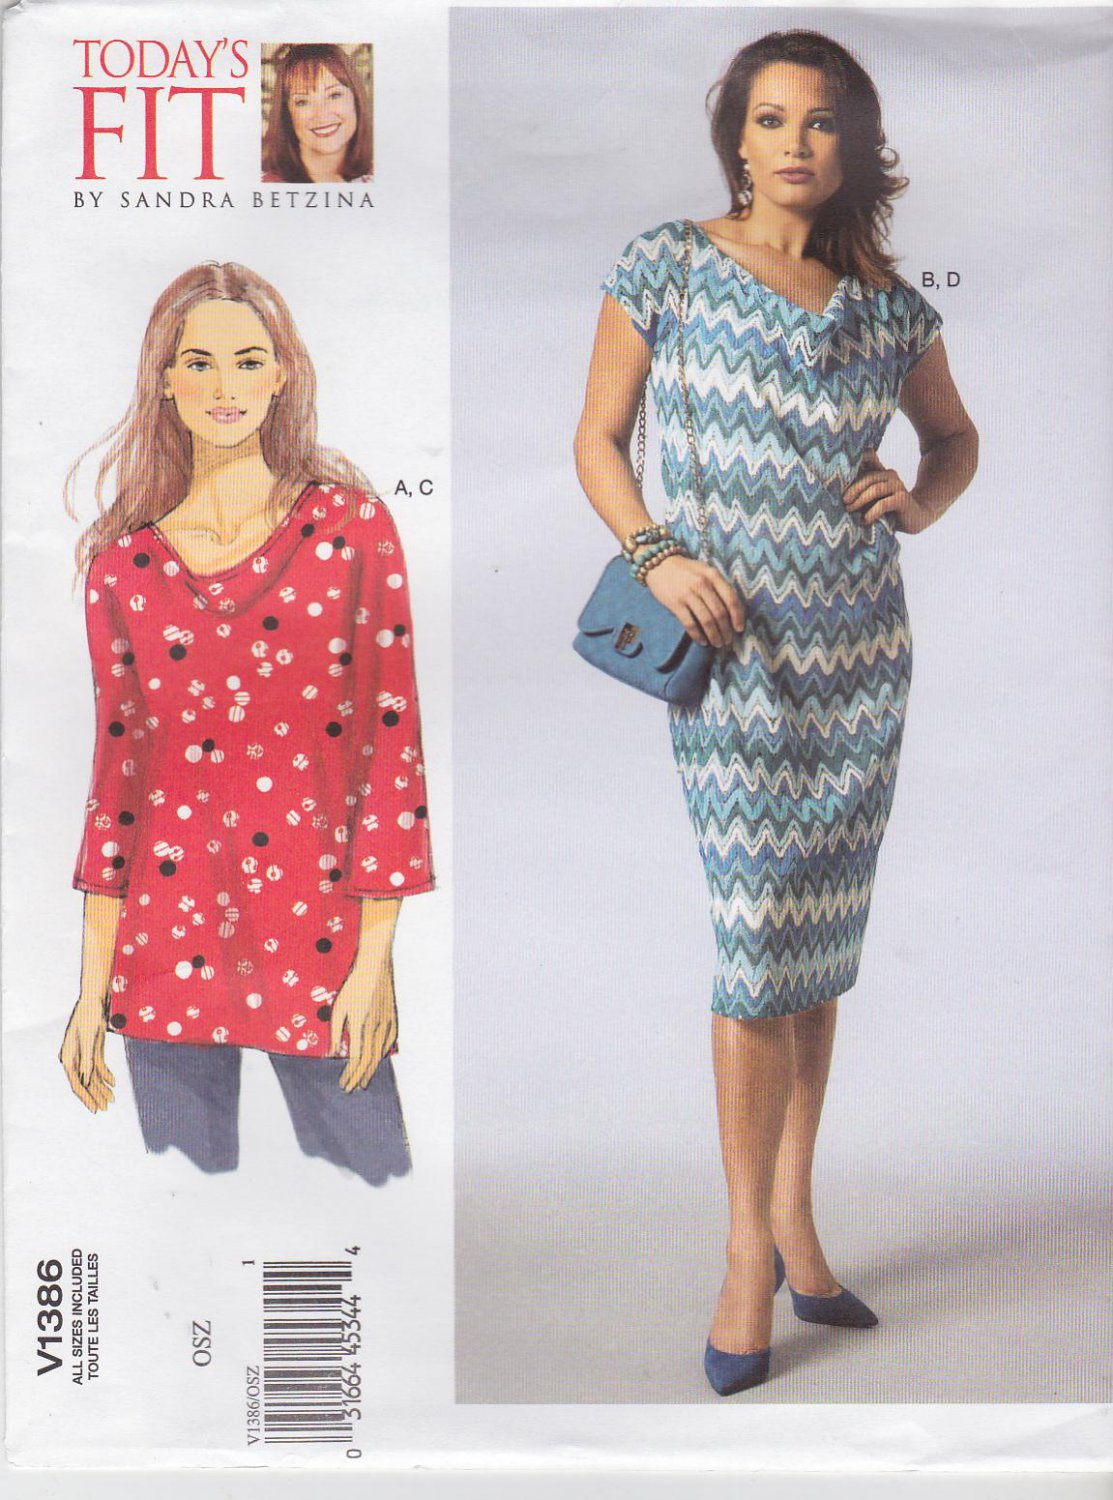 plus dress patterns knit